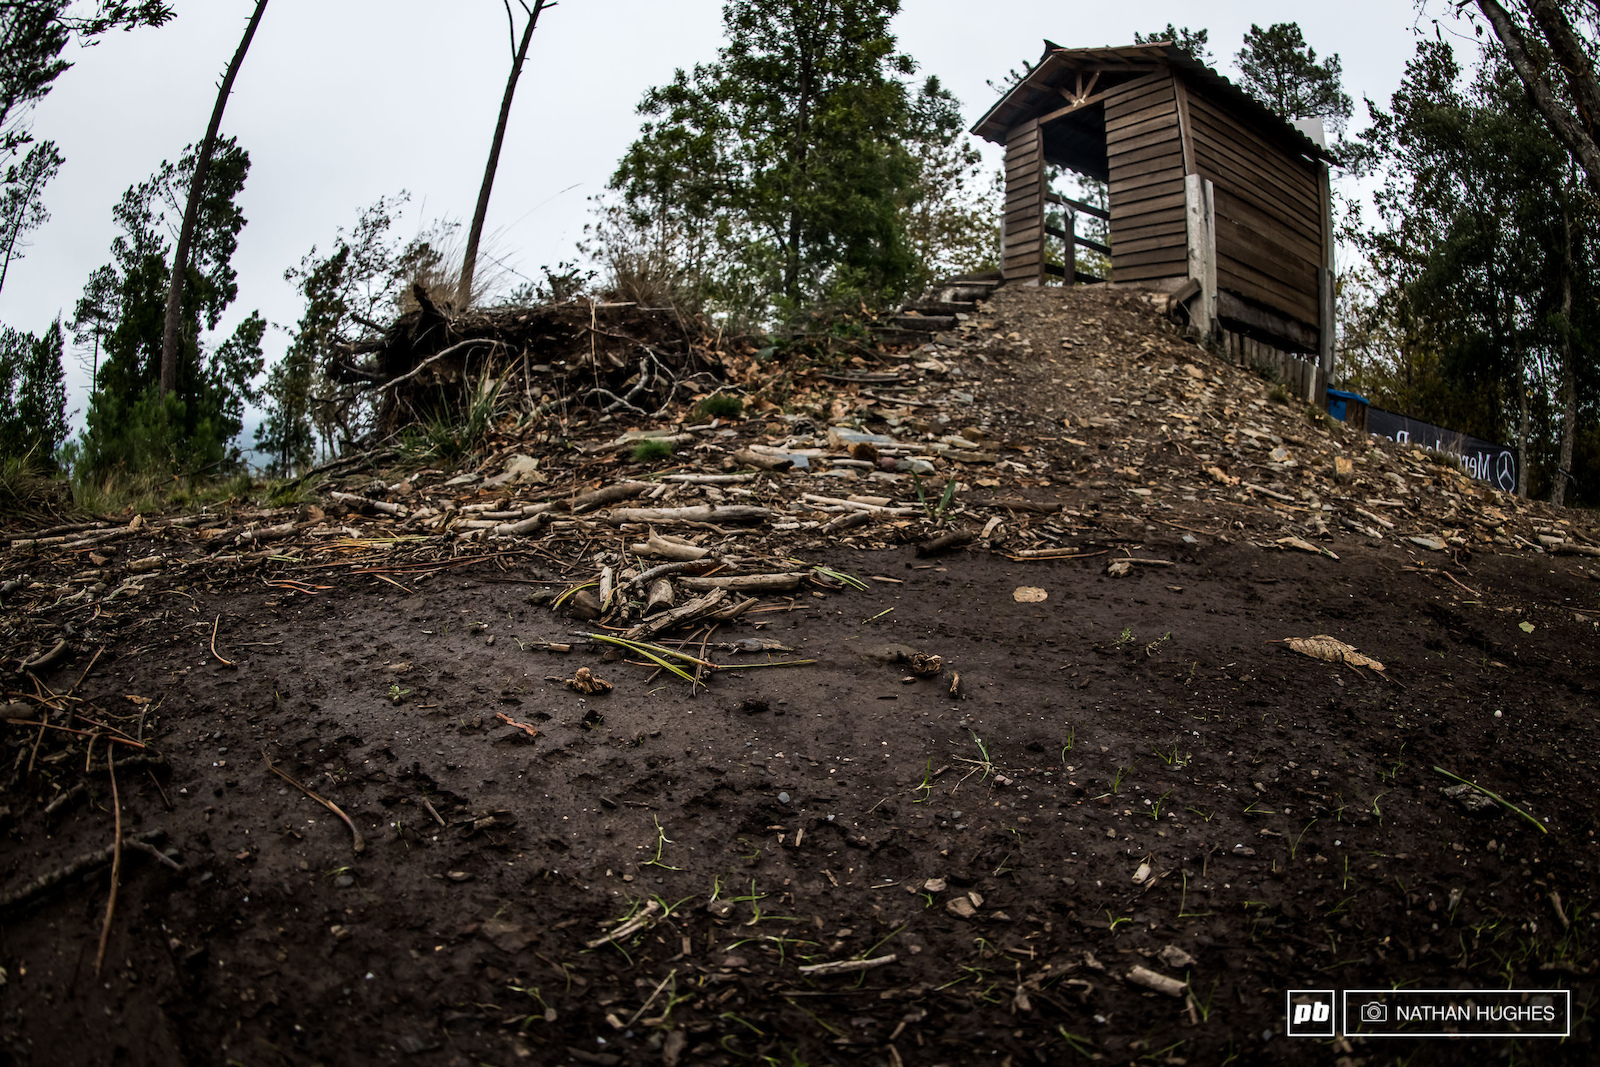 Humble beginnings with the start hut at the top of the bike park.